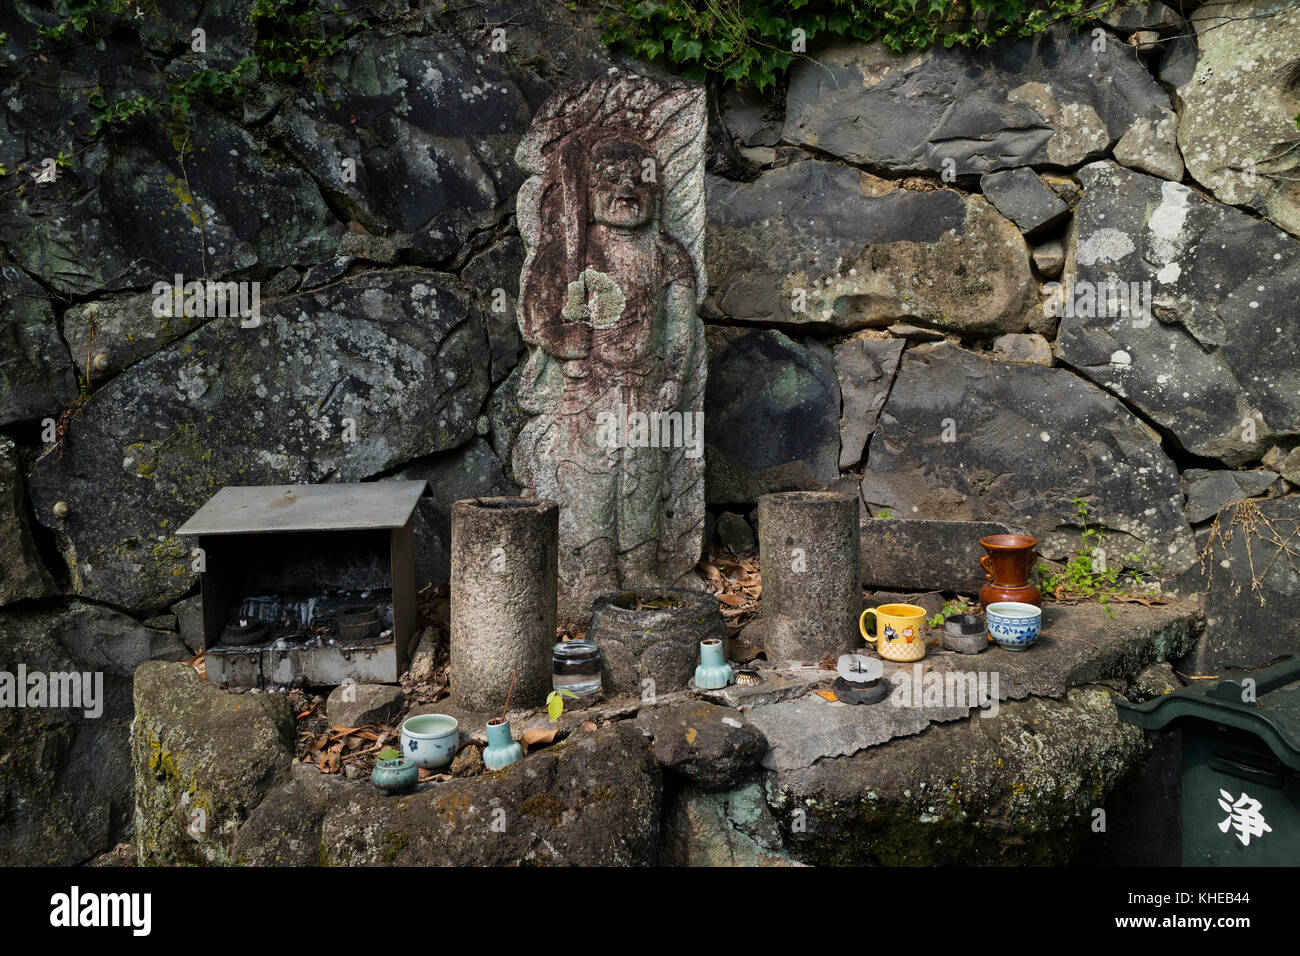 Nara, Japan -  May 31, 2017: Old stone sculpture honoured with cups of water and incense in the Kasugayama Primeval - Stock Image